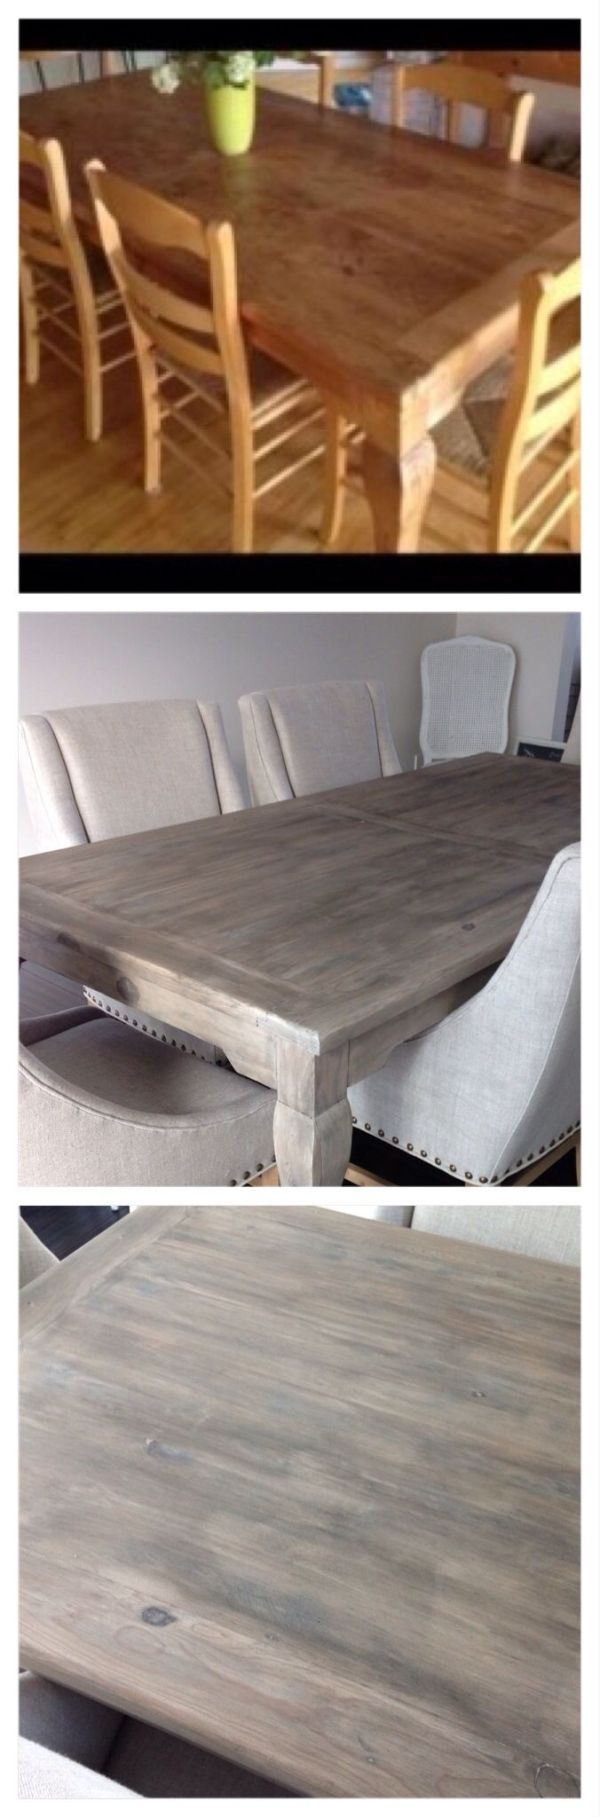 Farmhouse table restoration hardware - Diy Restoration Hardware Finish Craigslist Table Stripped Sanded Bleached I Used